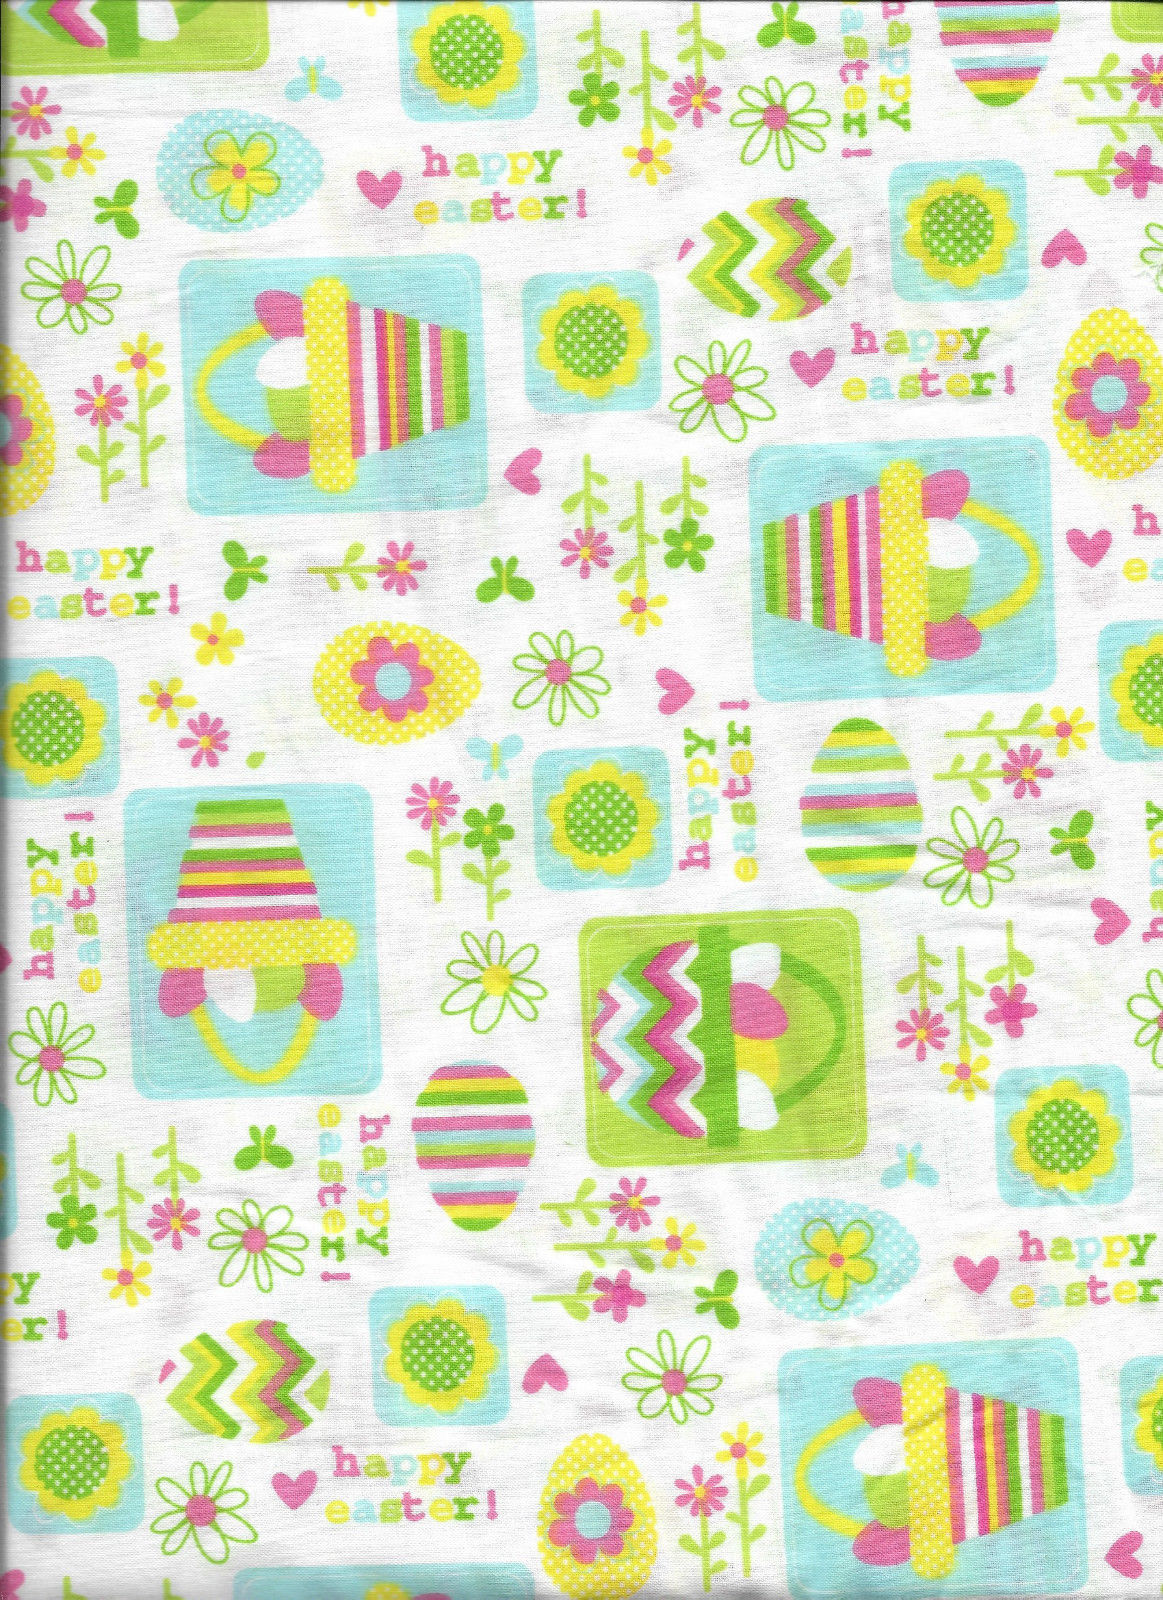 Spring Happy Easter with Flowers Baskets and Eggs 100% Cotton Fabric by the Yard